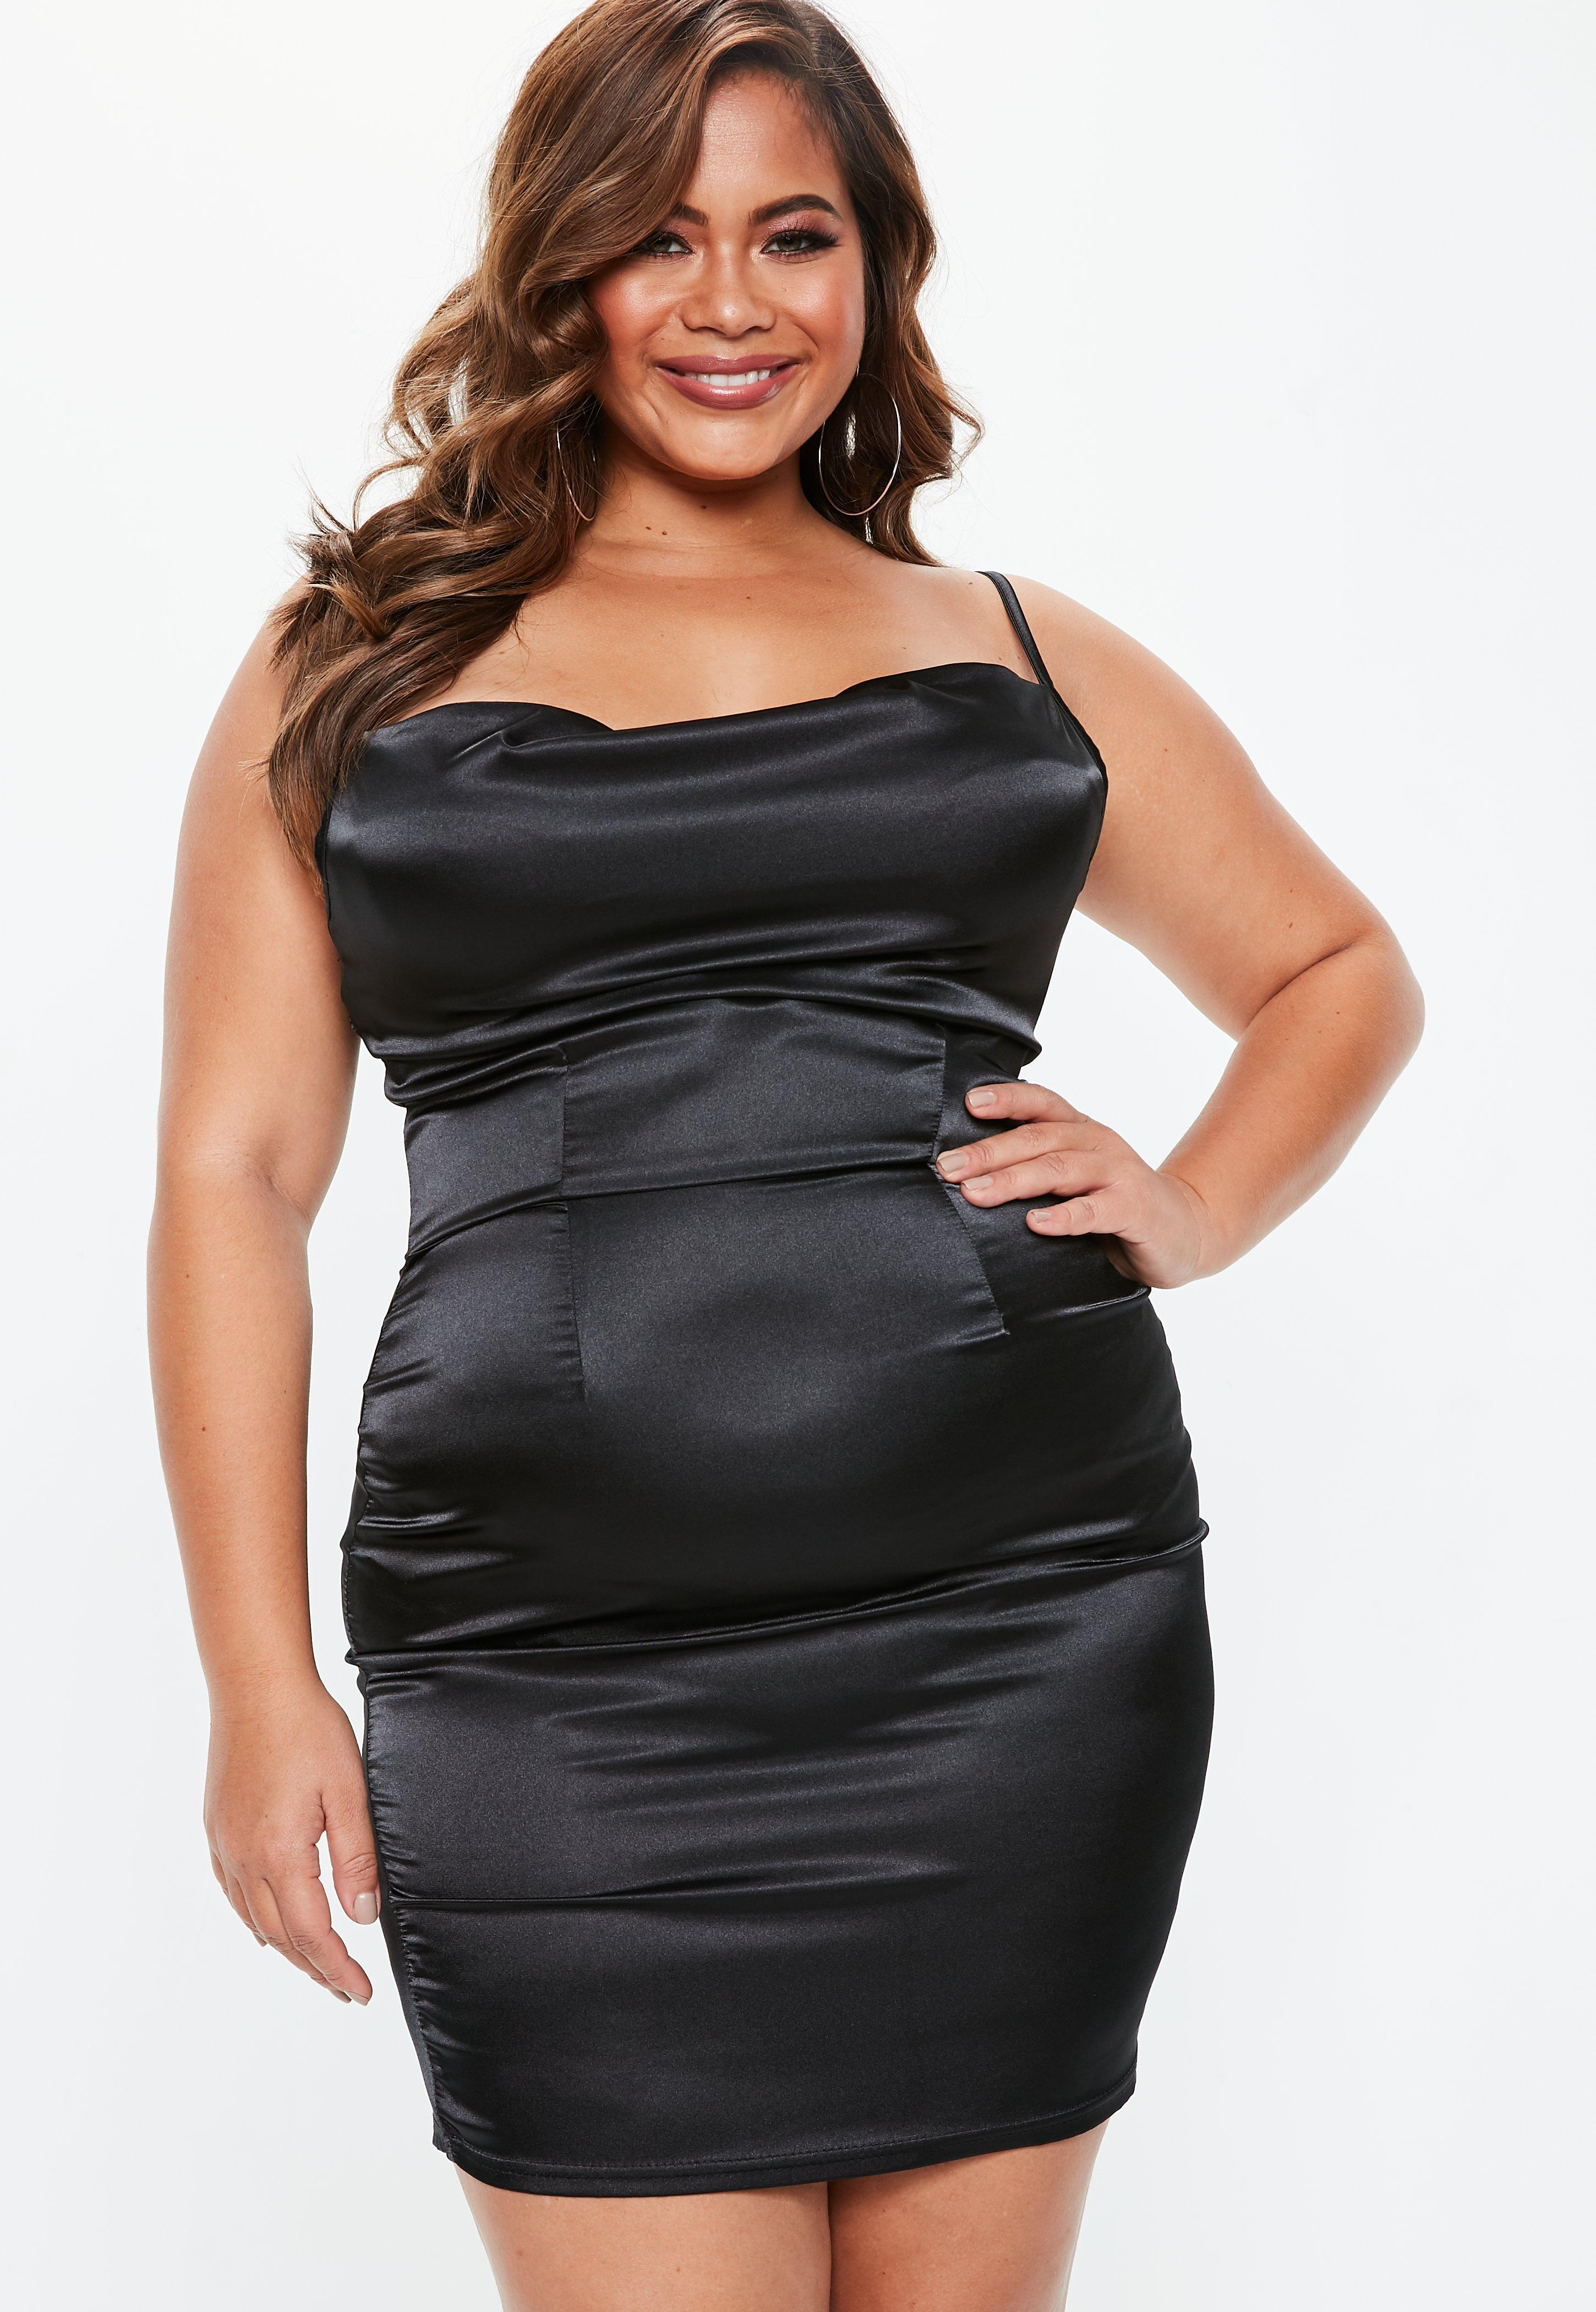 b54206e2835a4 Lyst - Missguided Plus Size Black Satin Cowl Neck Dress in Black